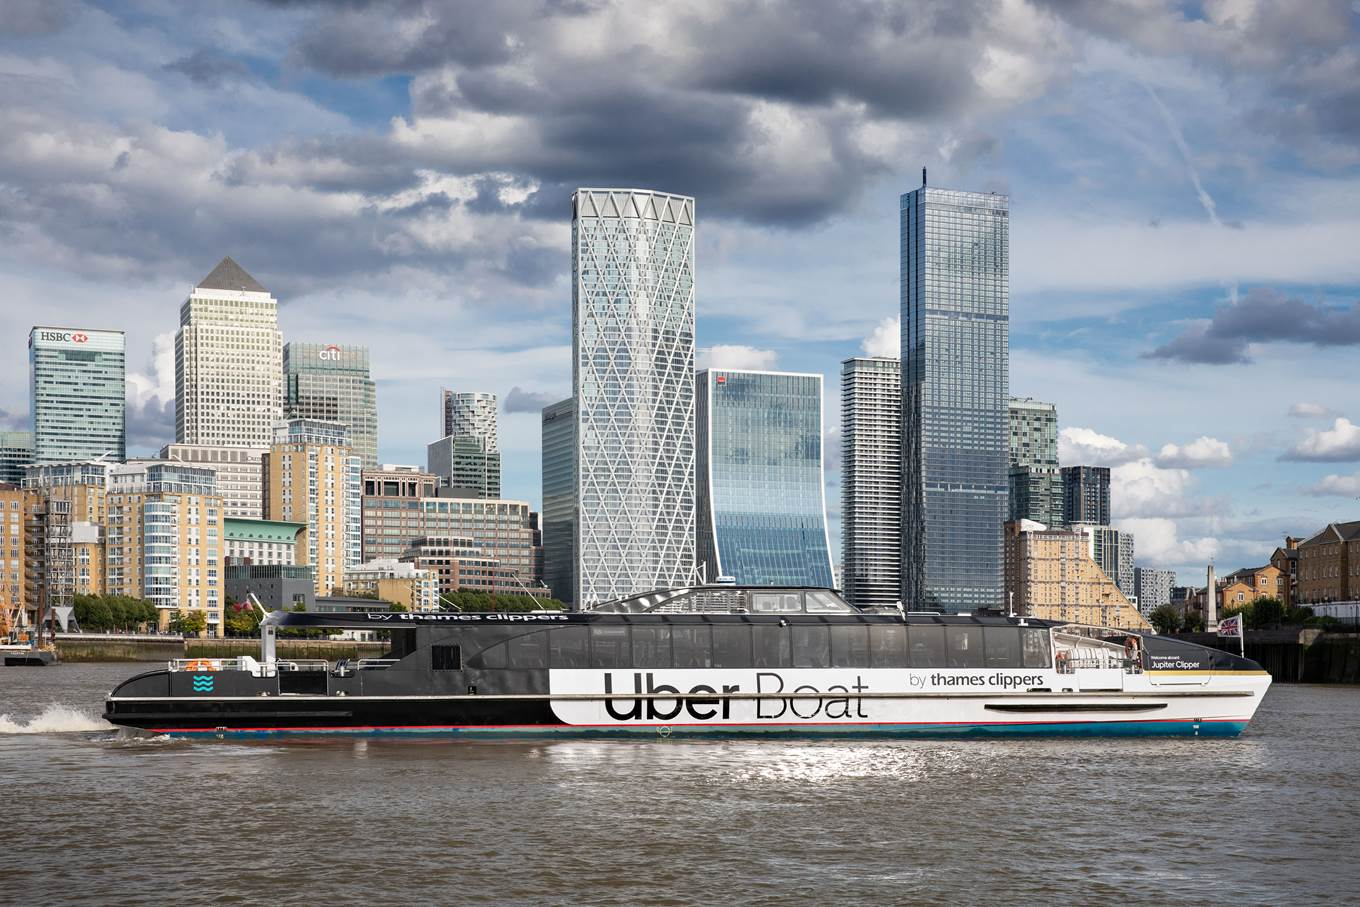 Uber Boat By Thames Clippers at Canary Wharf